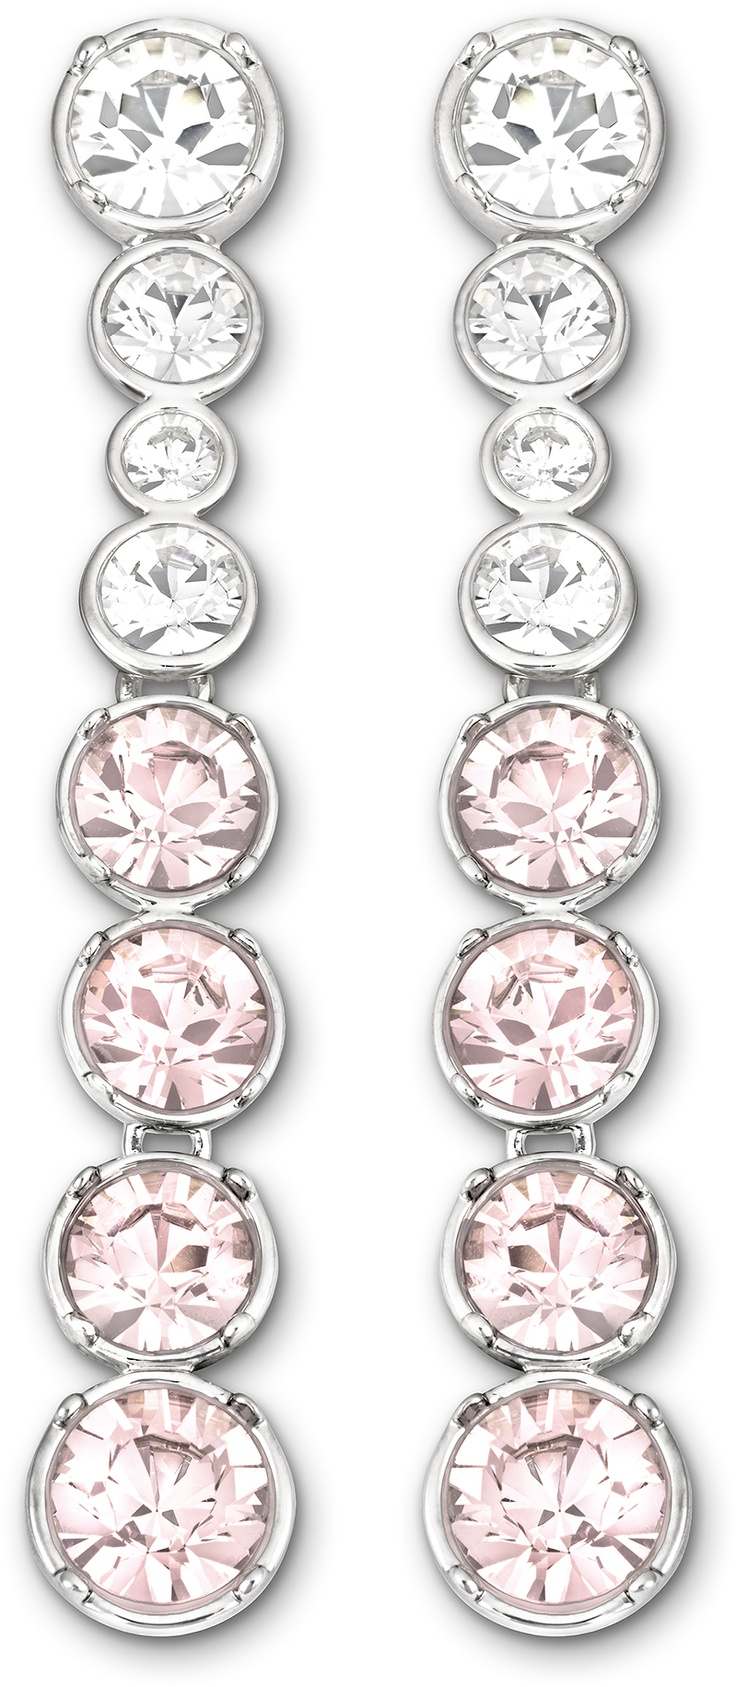 Play dress up on Valentine's Day with Swarovski Hot earrings